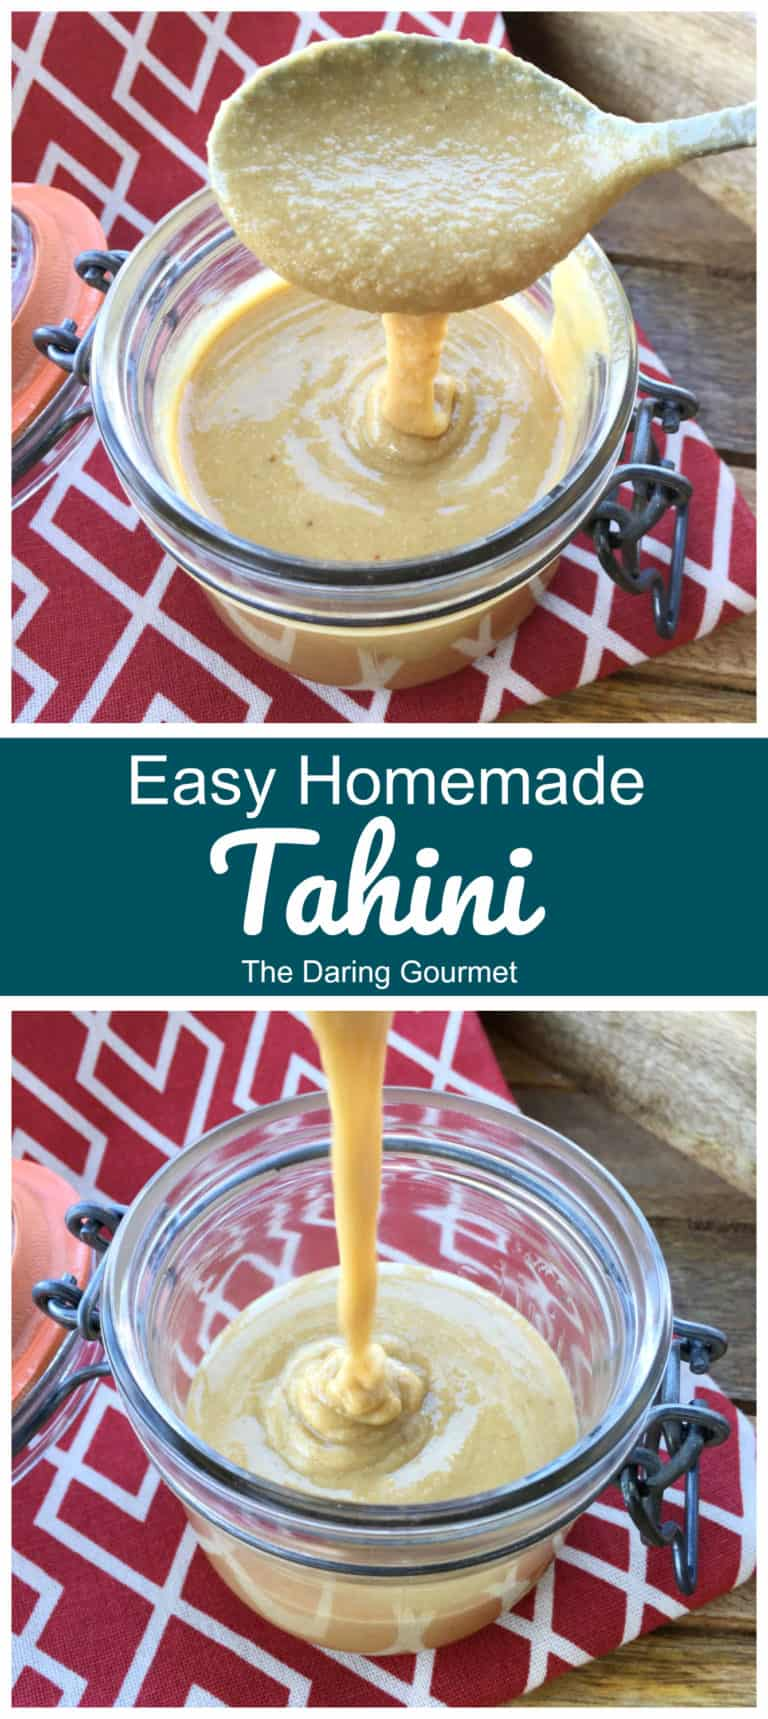 tahini recipe best homemade easy sesame